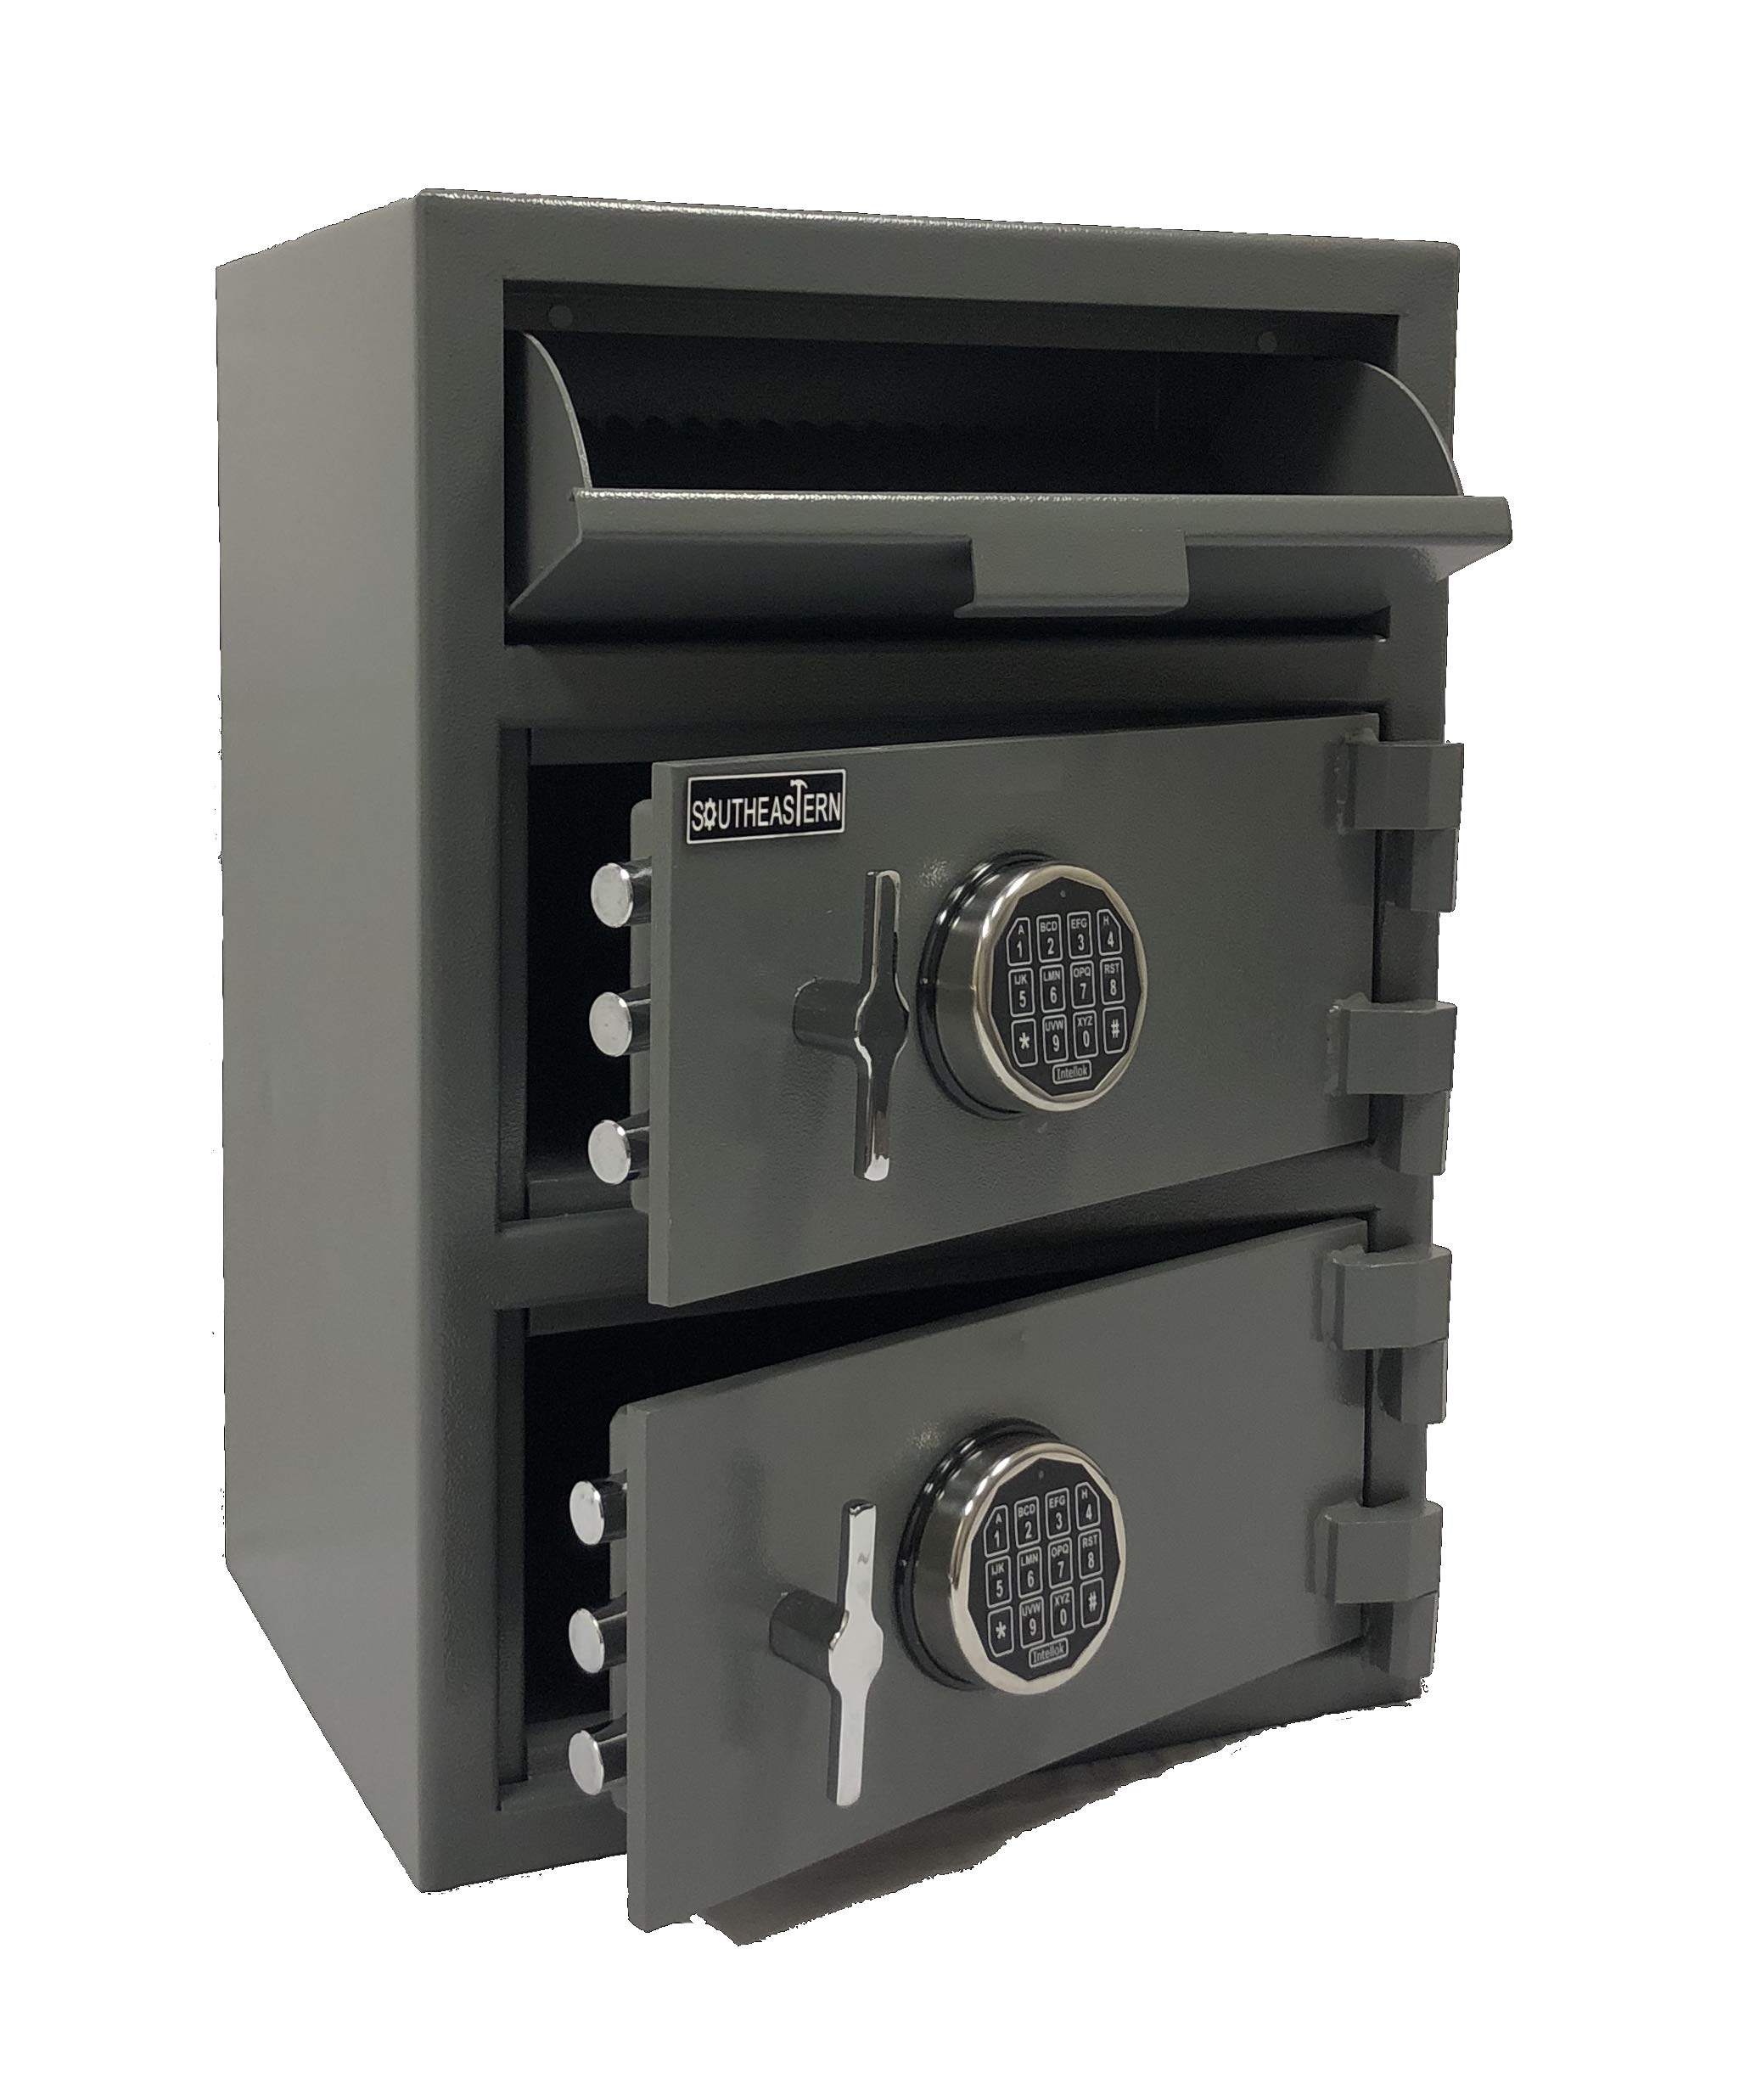 SOUTHEASTERN FL2820EE Double Door Money Bag Drop Depository Safe with UL Listed Digital Lock